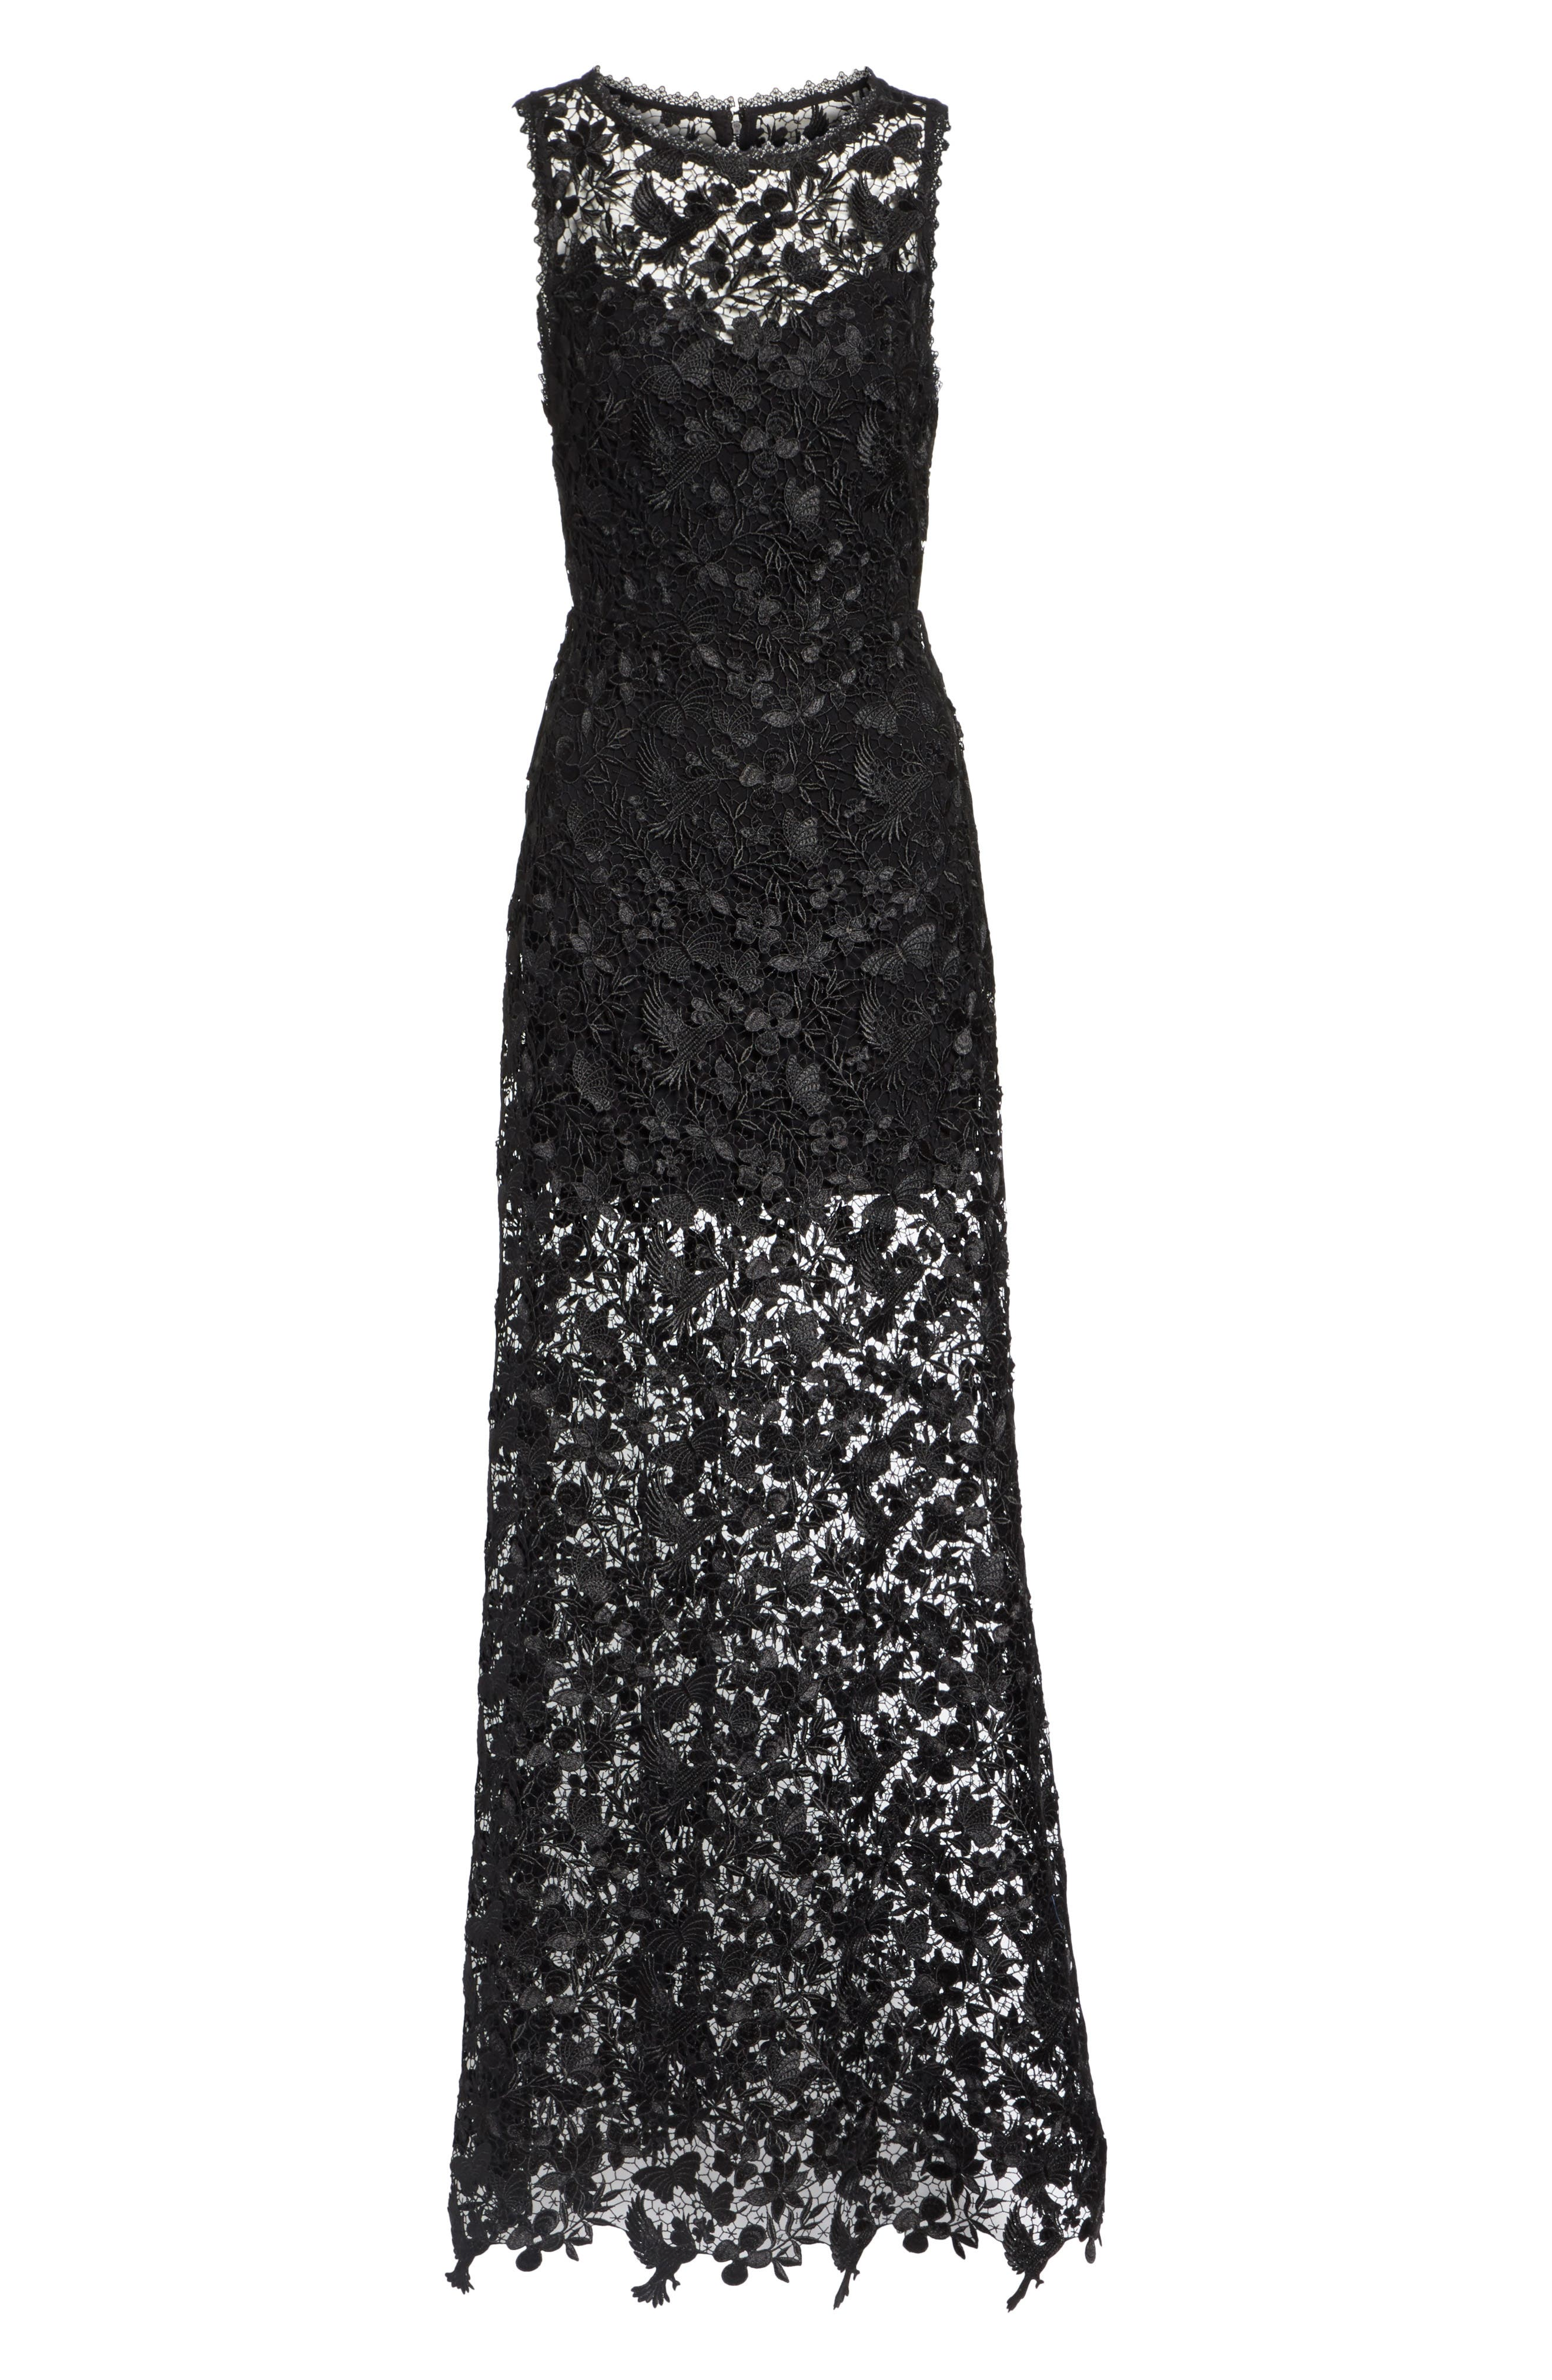 Danielle Silk Lace Overlay Sheer Maxi Dress,                             Alternate thumbnail 6, color,                             Black